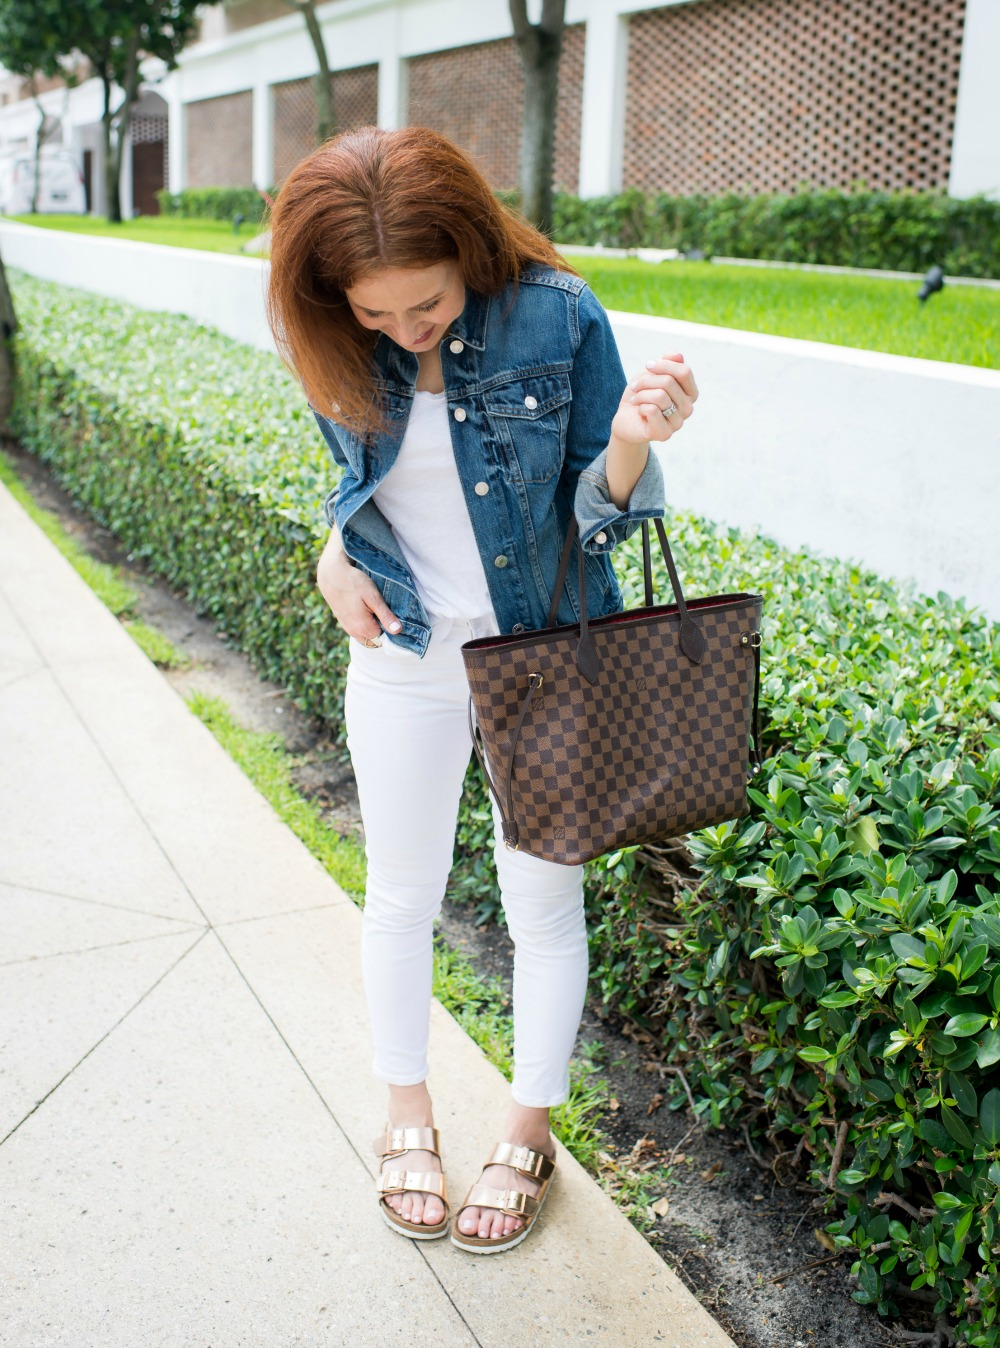 Five Super easy outfit ideas for white tee and white denim| How to Wear White Jeans & White Tee - outfit ideas featured by popular Florida style blogger, The Modern Savvy